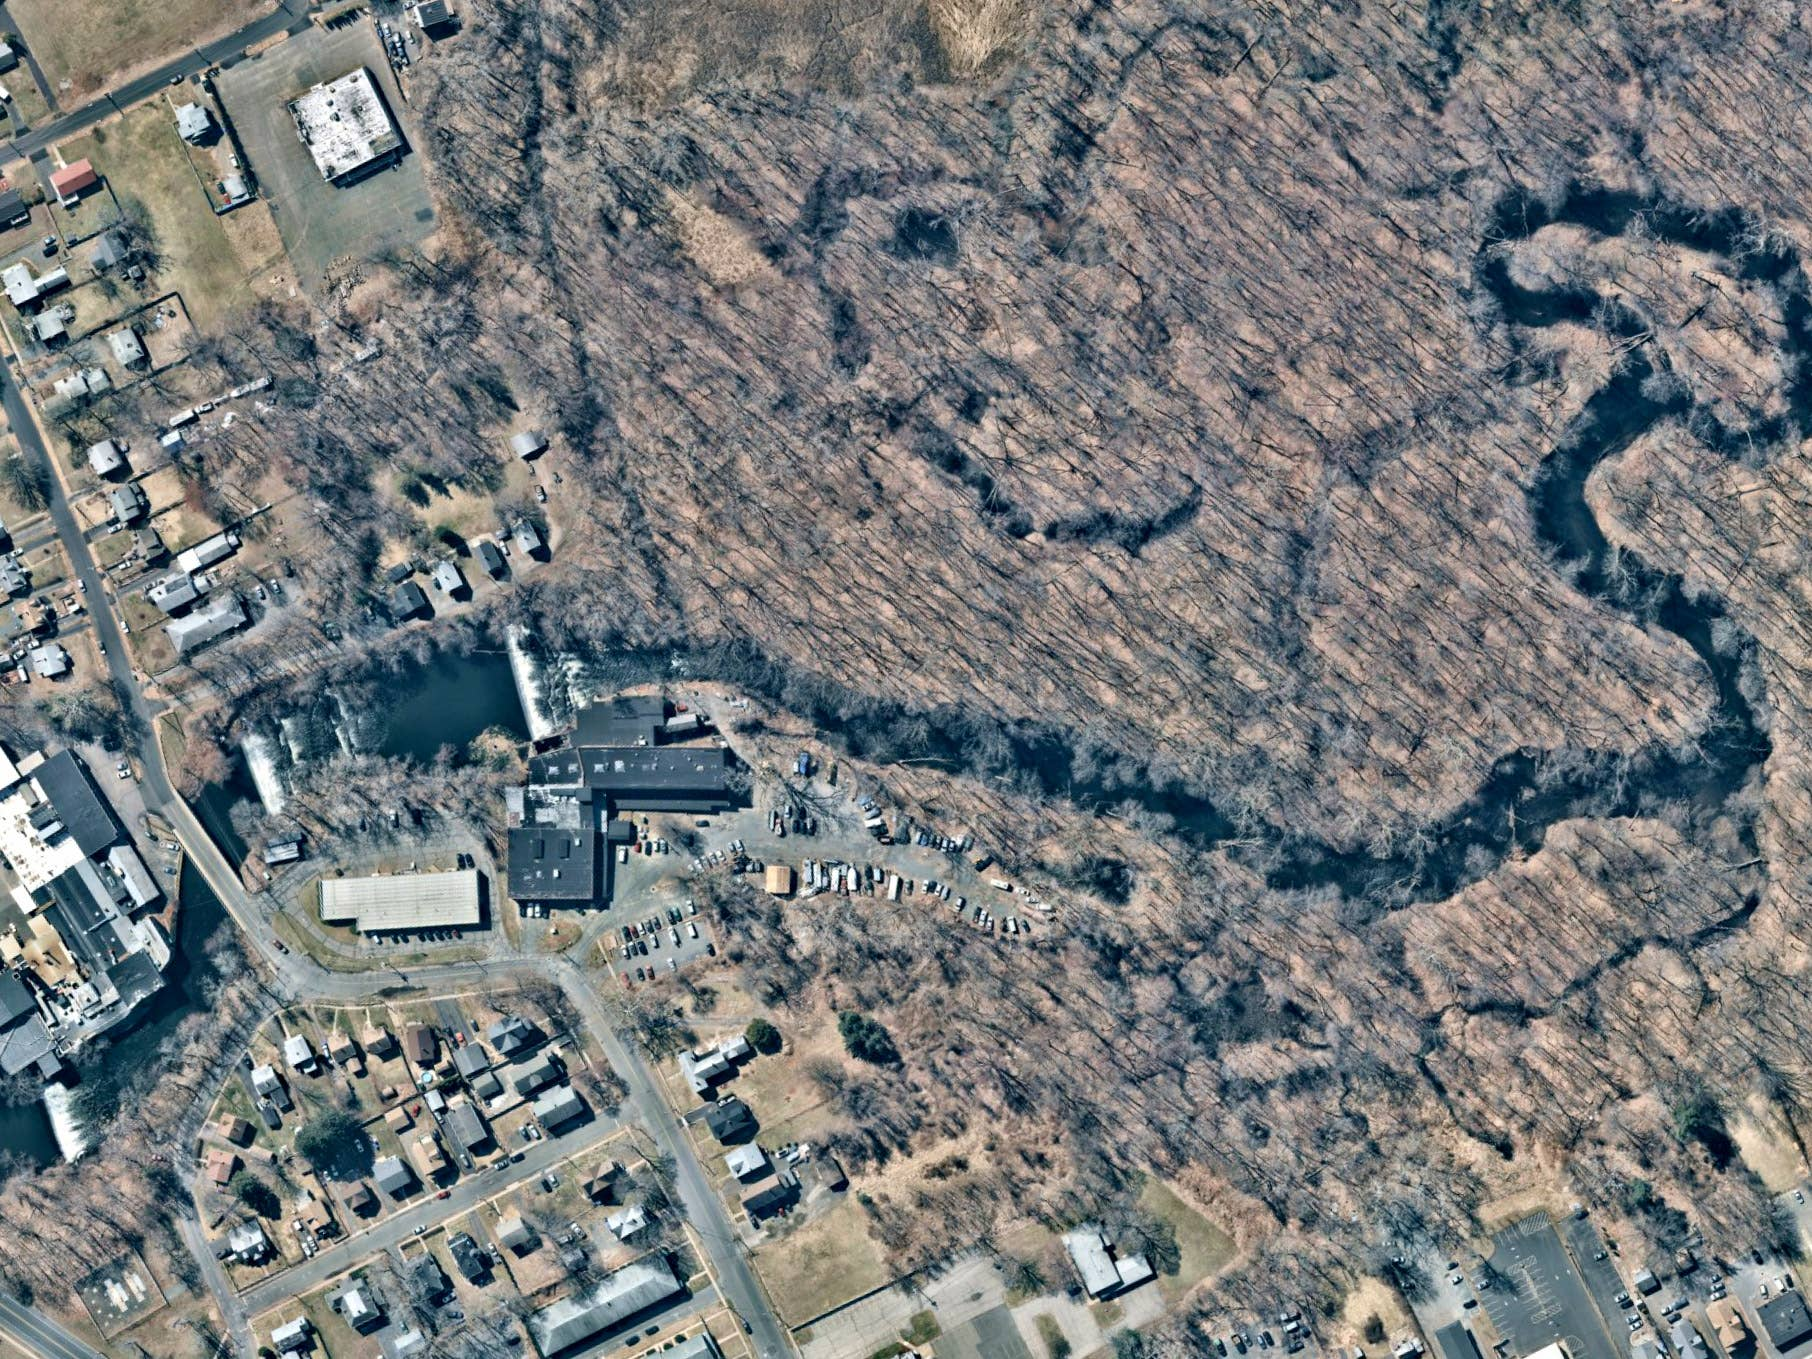 Overhead view, stormwater management, East Hartford, CT -- 1 April 2019